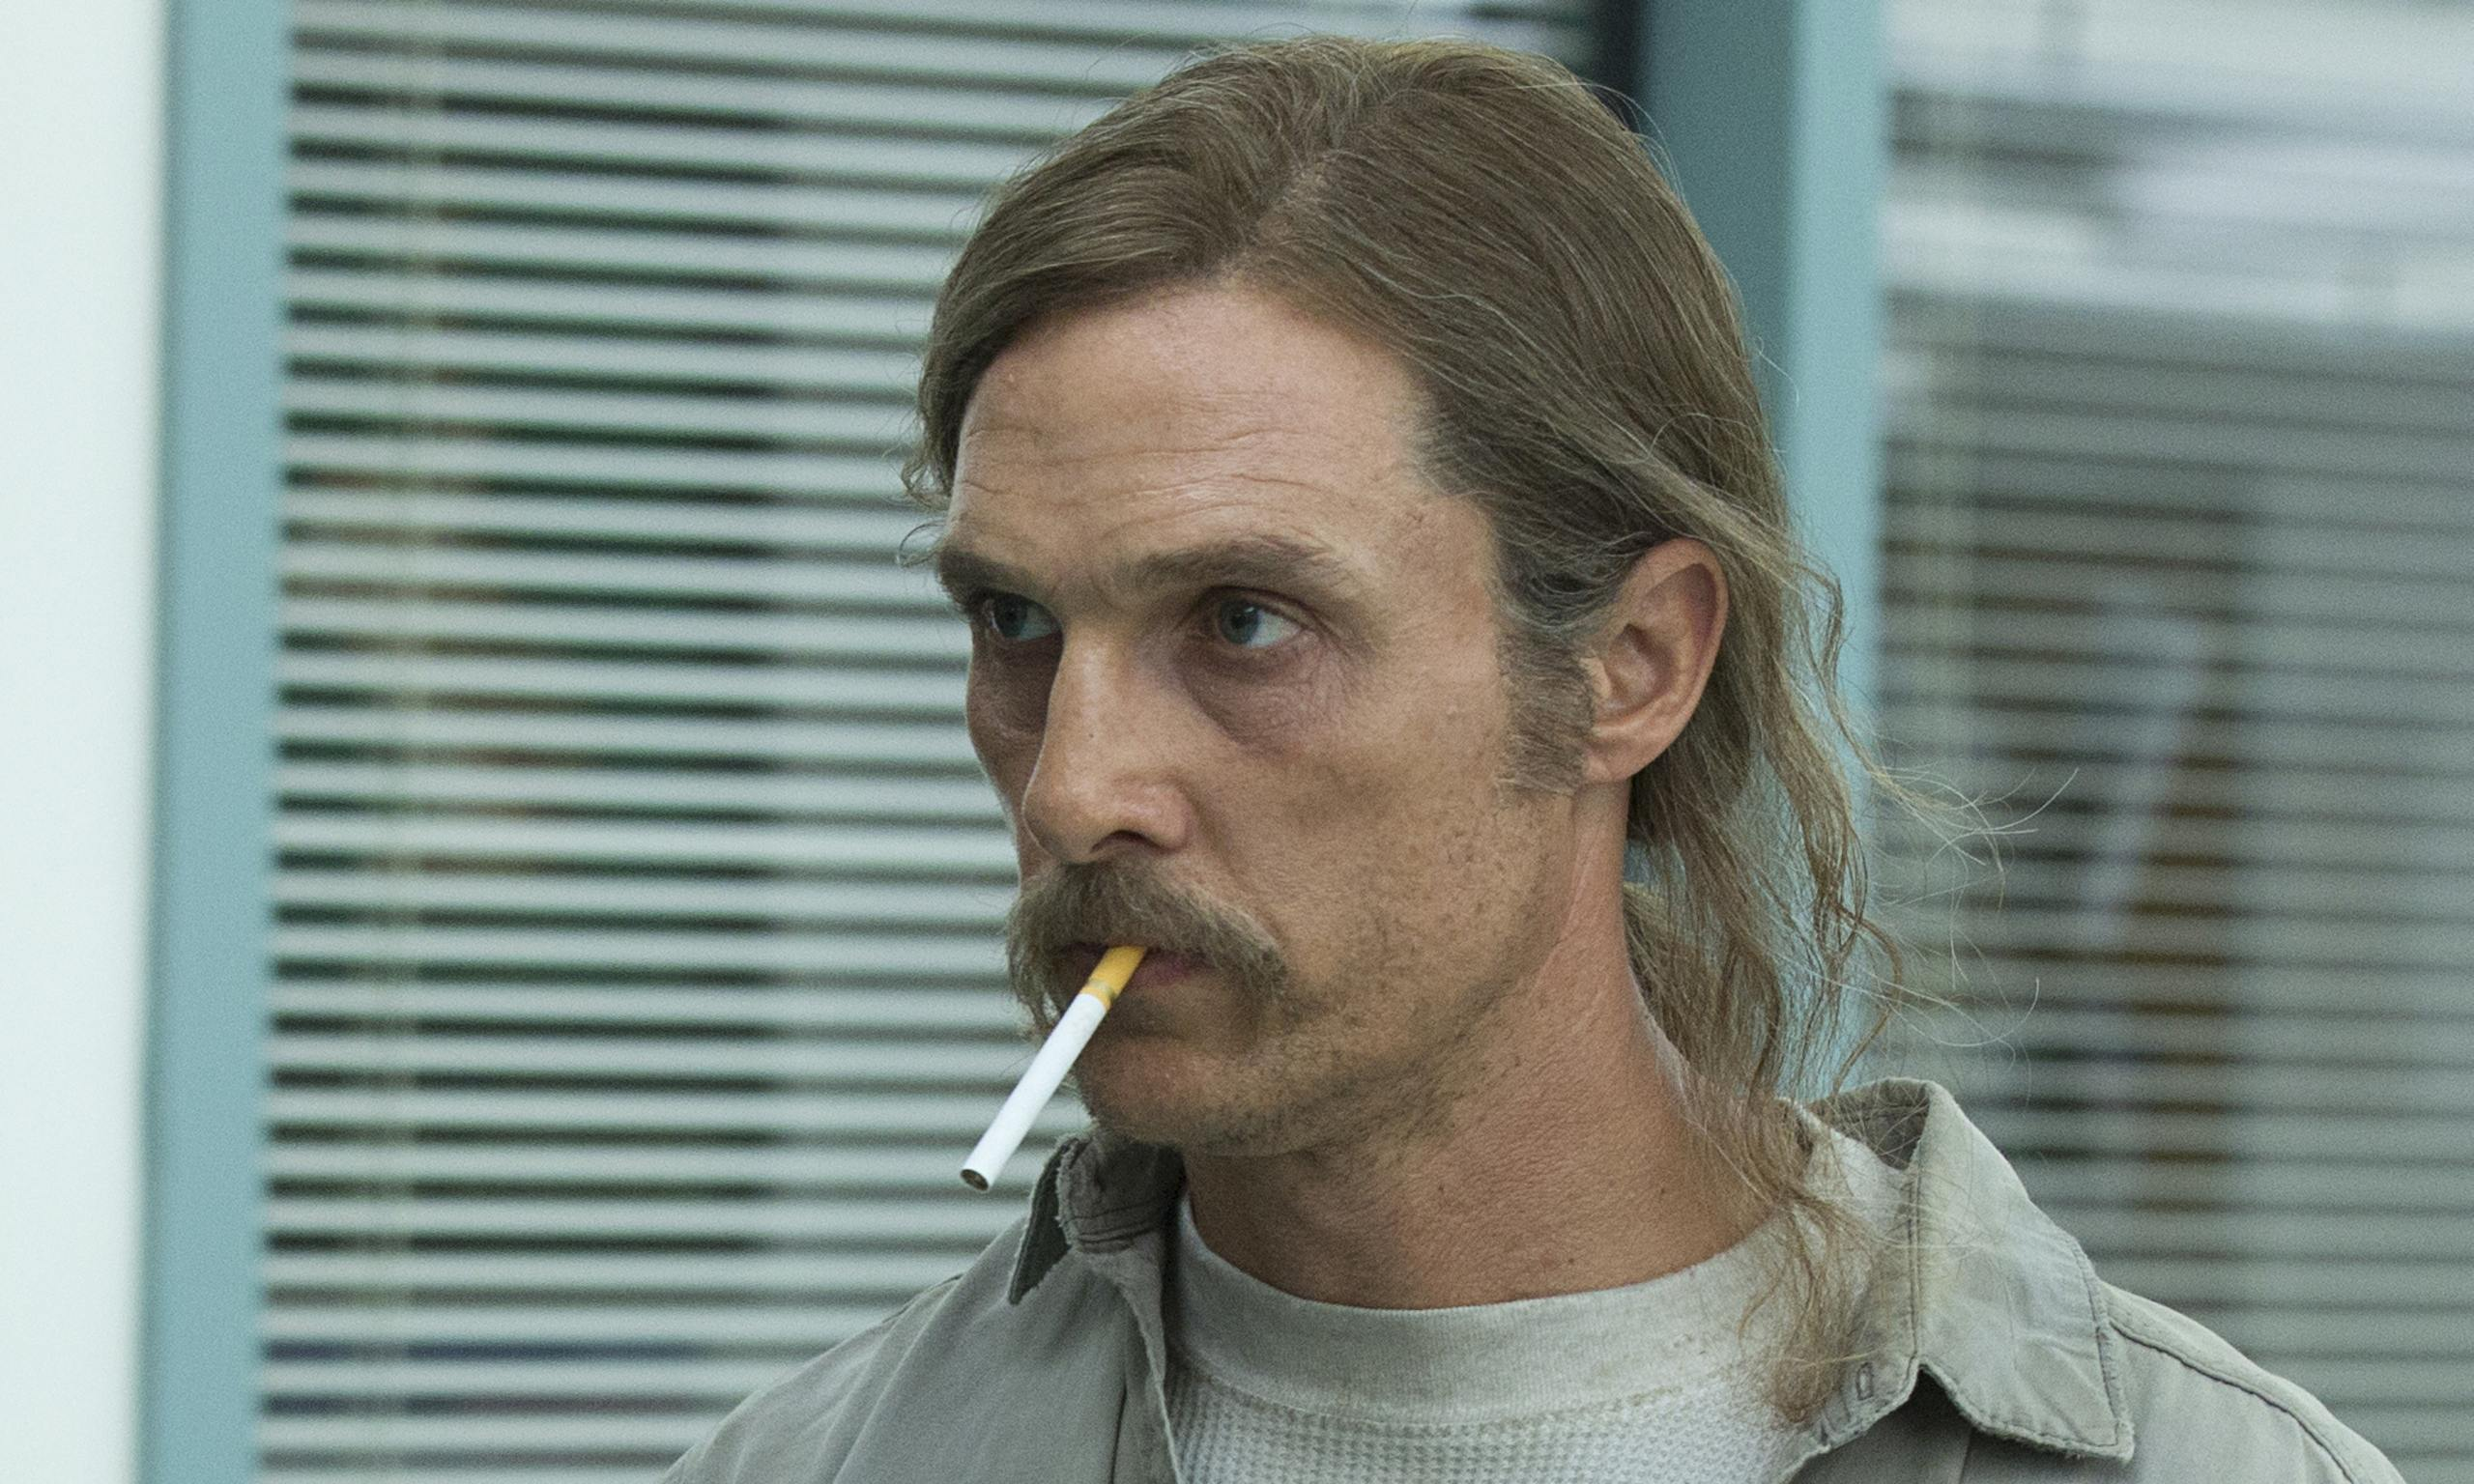 Personal problems? Relax! Rust Cohle, agony uncle, is here to help